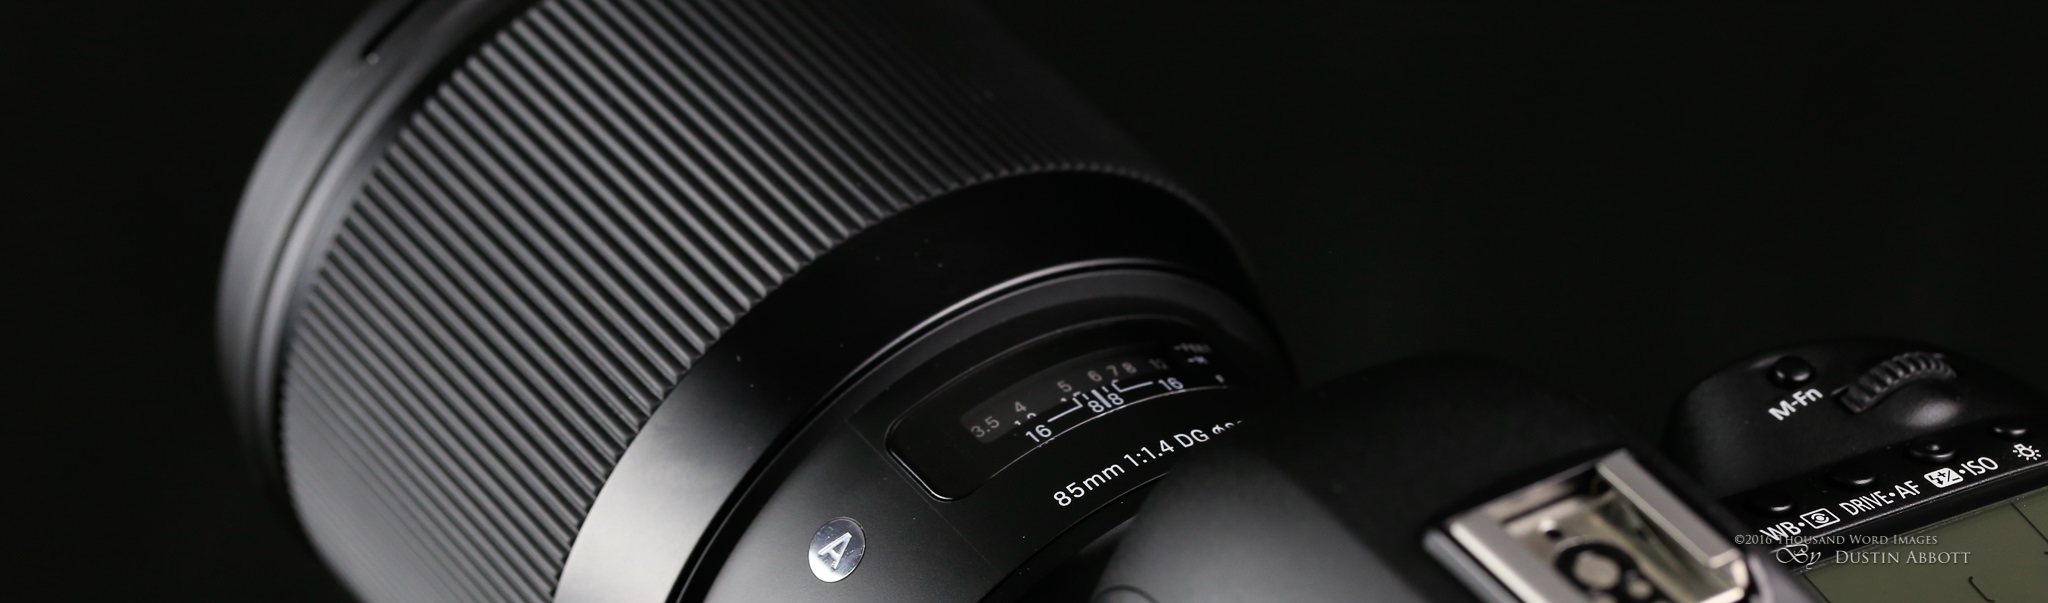 Sigma 85mm F 14 Dg Hsm Art Review Ex For Nikon Ive Been Covering The Series Since Early On I Actually Covered 50mm Before 35mm But Basically Only Missed 24mm